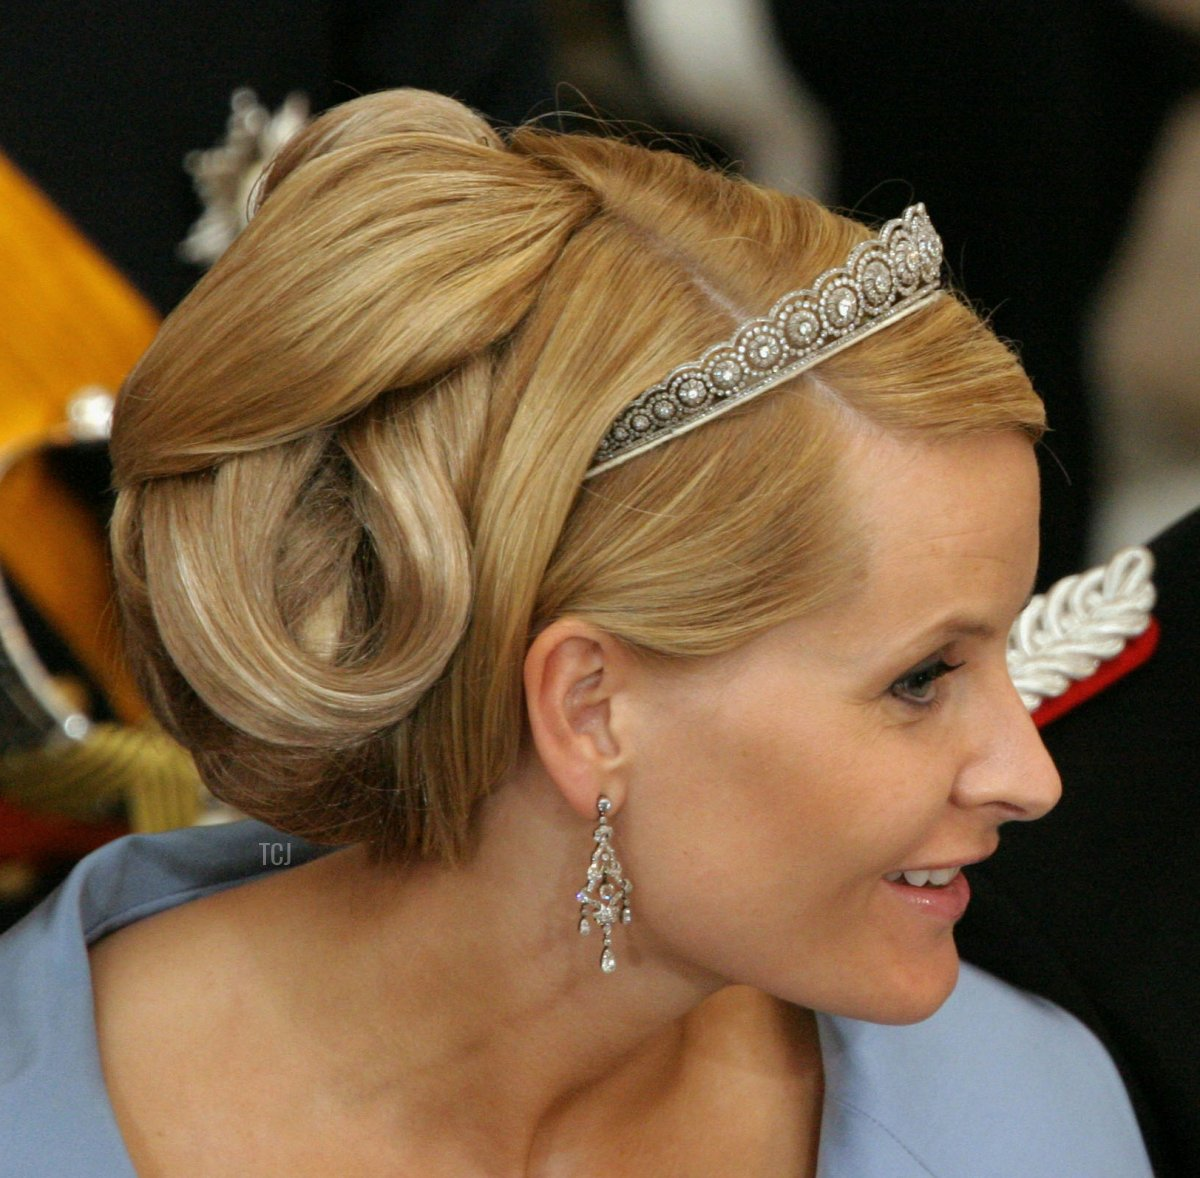 Crown Prince Haakon and his wife Crown Princess Mette-Marit of Norway attend the wedding between Danish Crown Prince Frederik and Miss Mary Elizabeth Donaldson in Copenhagen Cathedral May 14, 2004